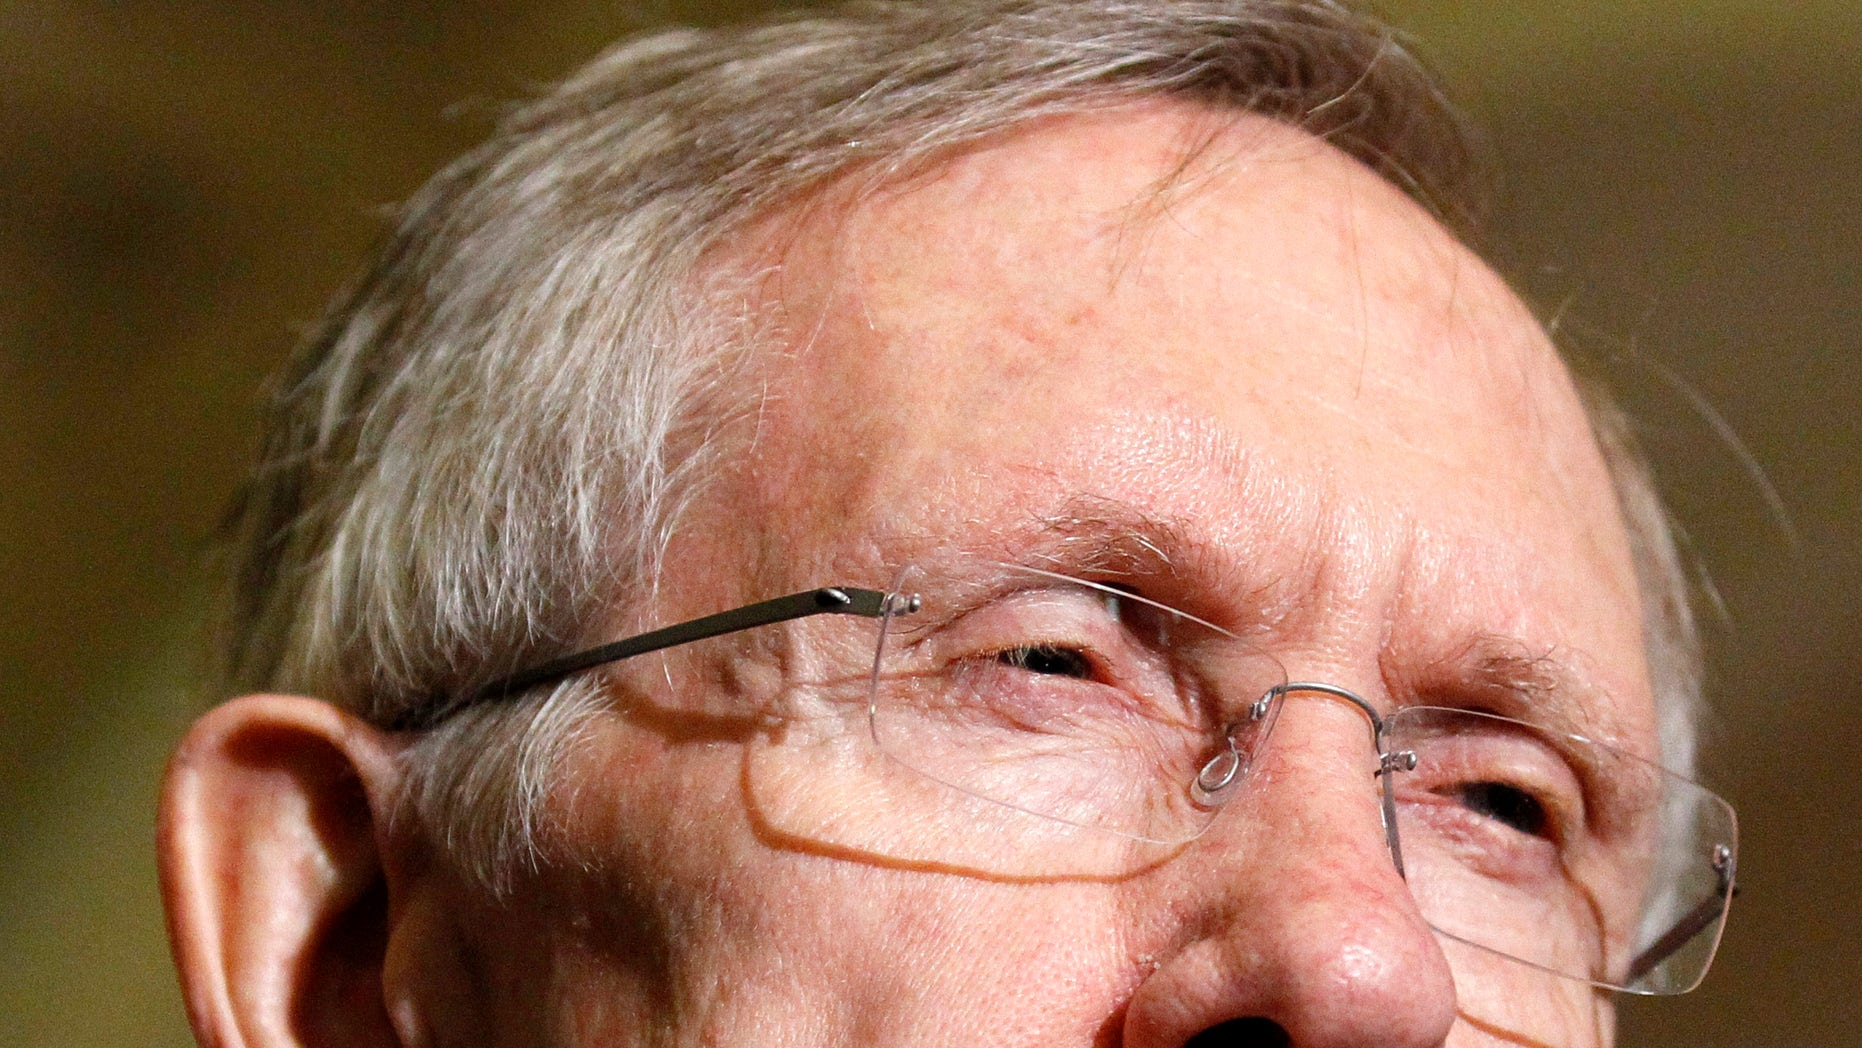 Senate Majority Leader Harry Reid of Nev., pauses while speaking with the media, after their Senate Democratic caucus, Wednesday, Dec. 8, 2010, on Capitol Hill in Washington. (AP)